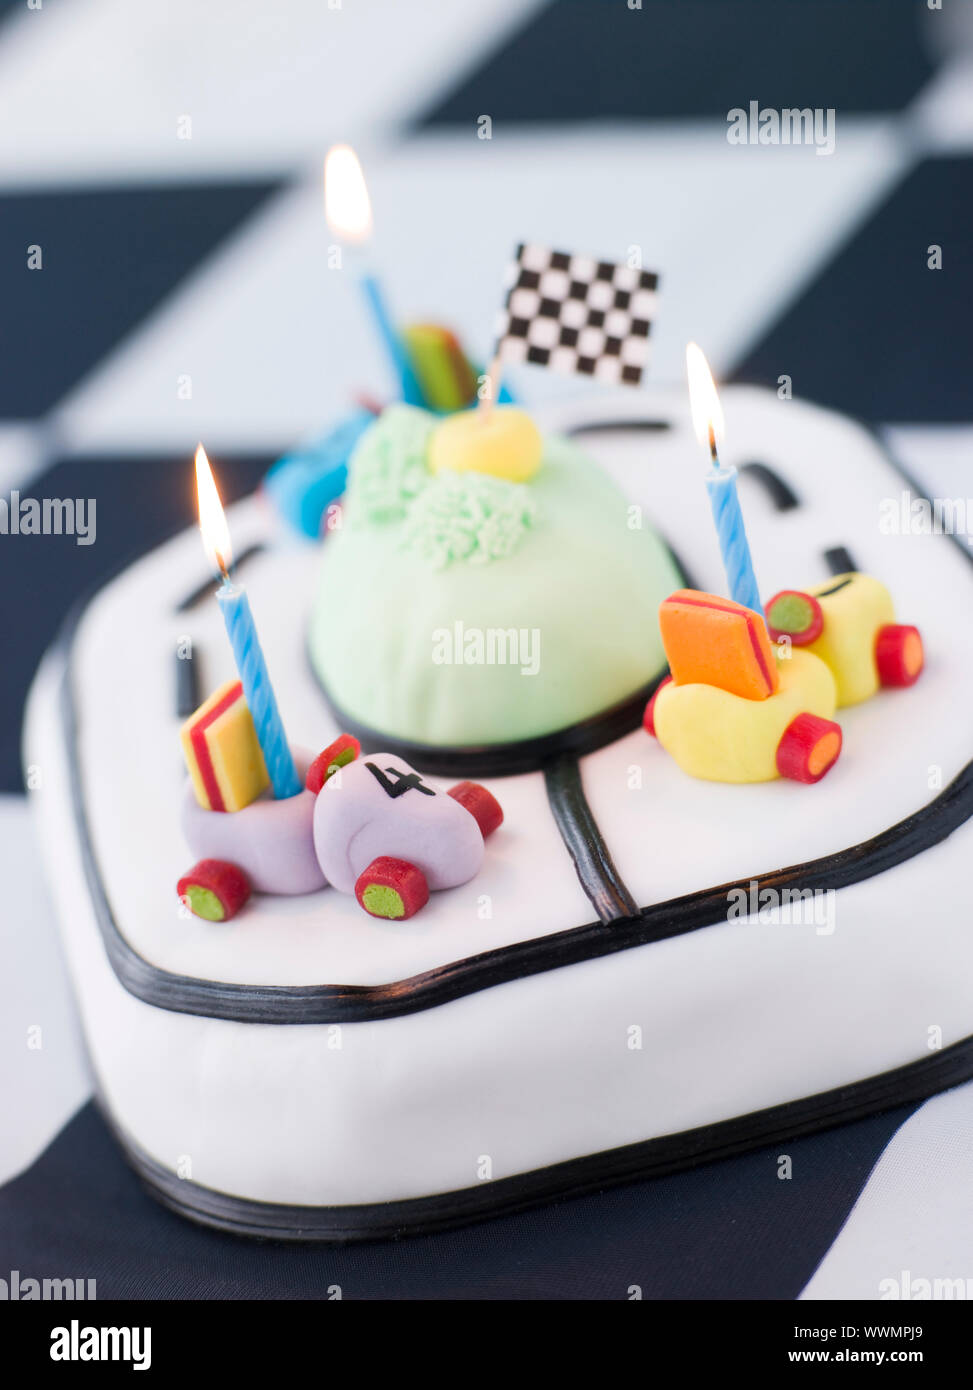 Enjoyable Racing Car Birthday Cake Stock Photo 273978721 Alamy Funny Birthday Cards Online Elaedamsfinfo